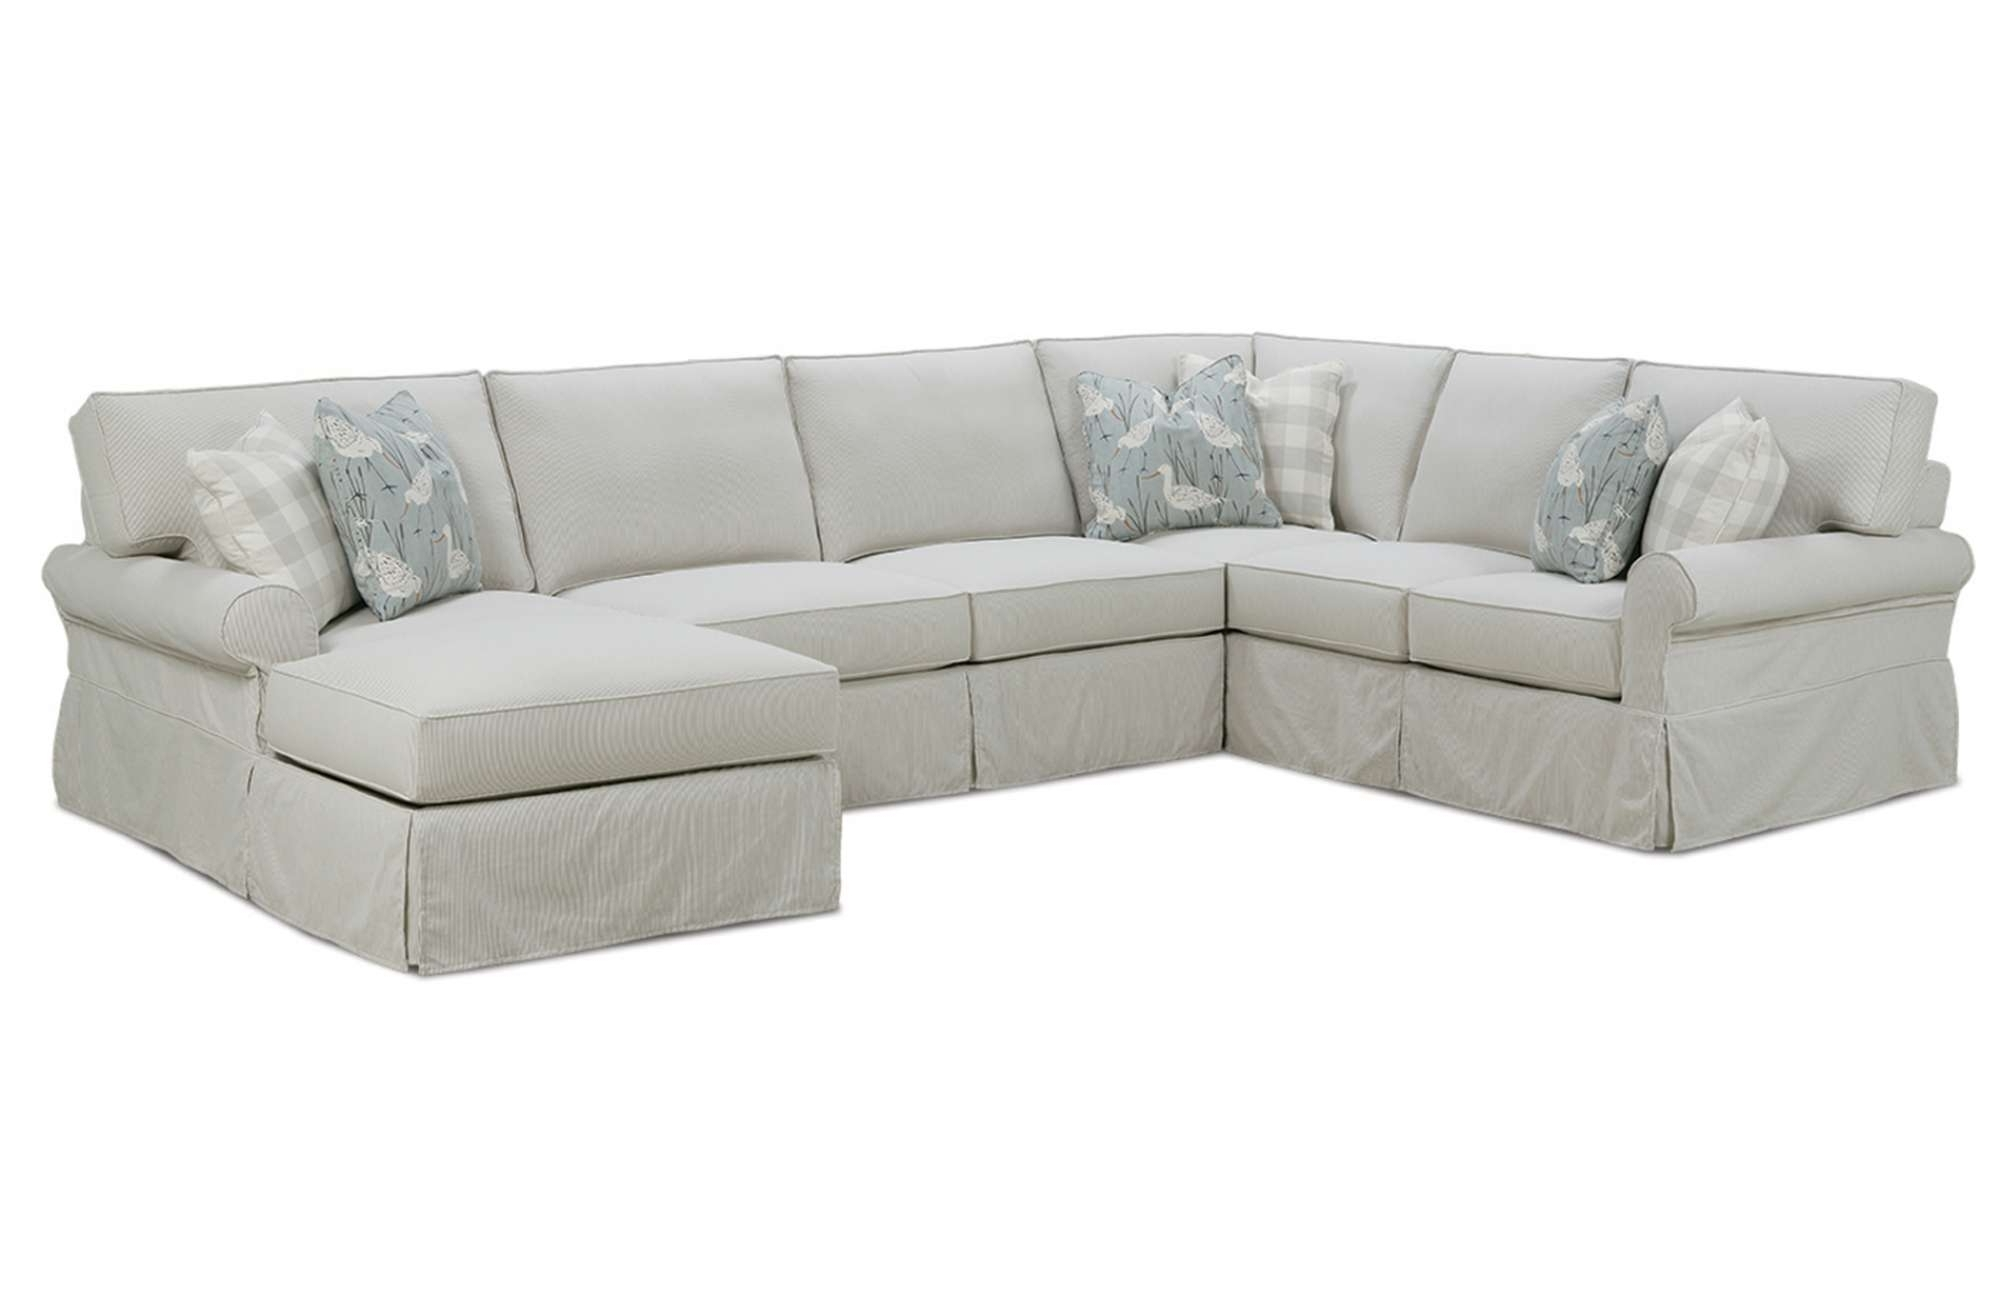 Fashionable Easton Slipcover Sectionalrowe Furniture With Slipcovers For Sectionals With Chaise (View 7 of 15)